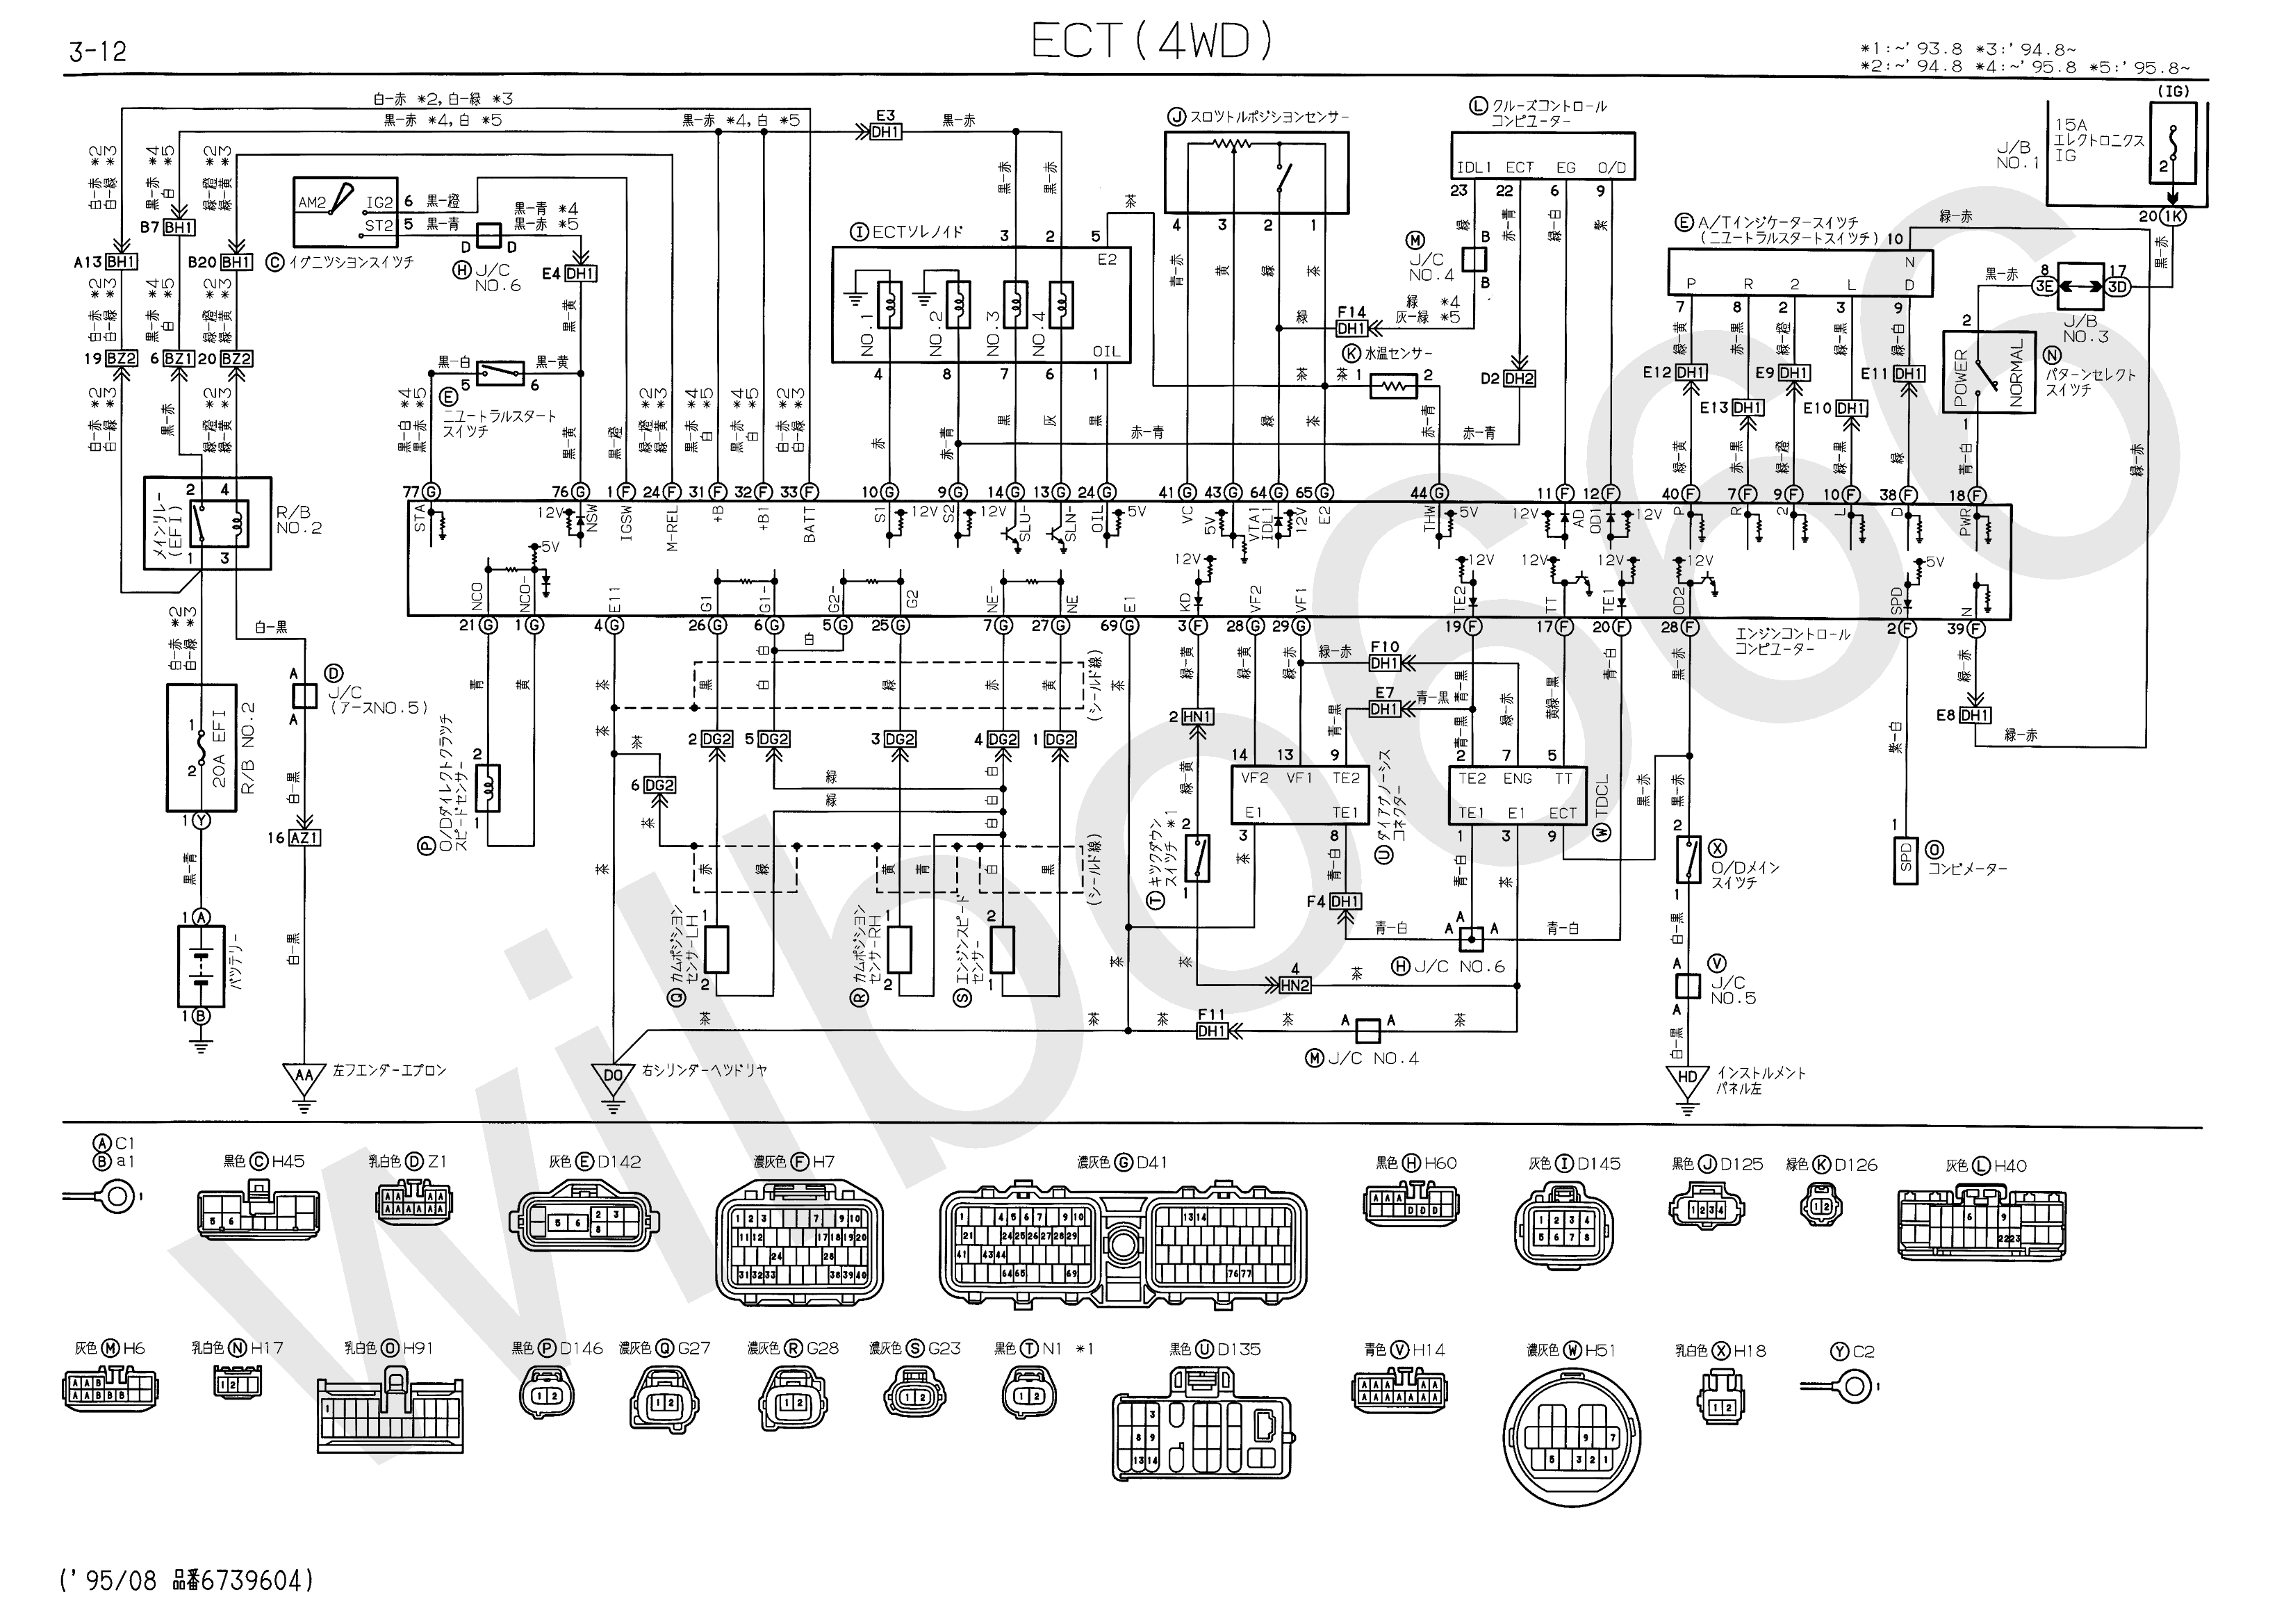 Infinity G20 Spark Plug Wiring Diagram 38 Images Infiniti G37 Jzs14232c Uzs1423 Electrical 6739604 3 12resize